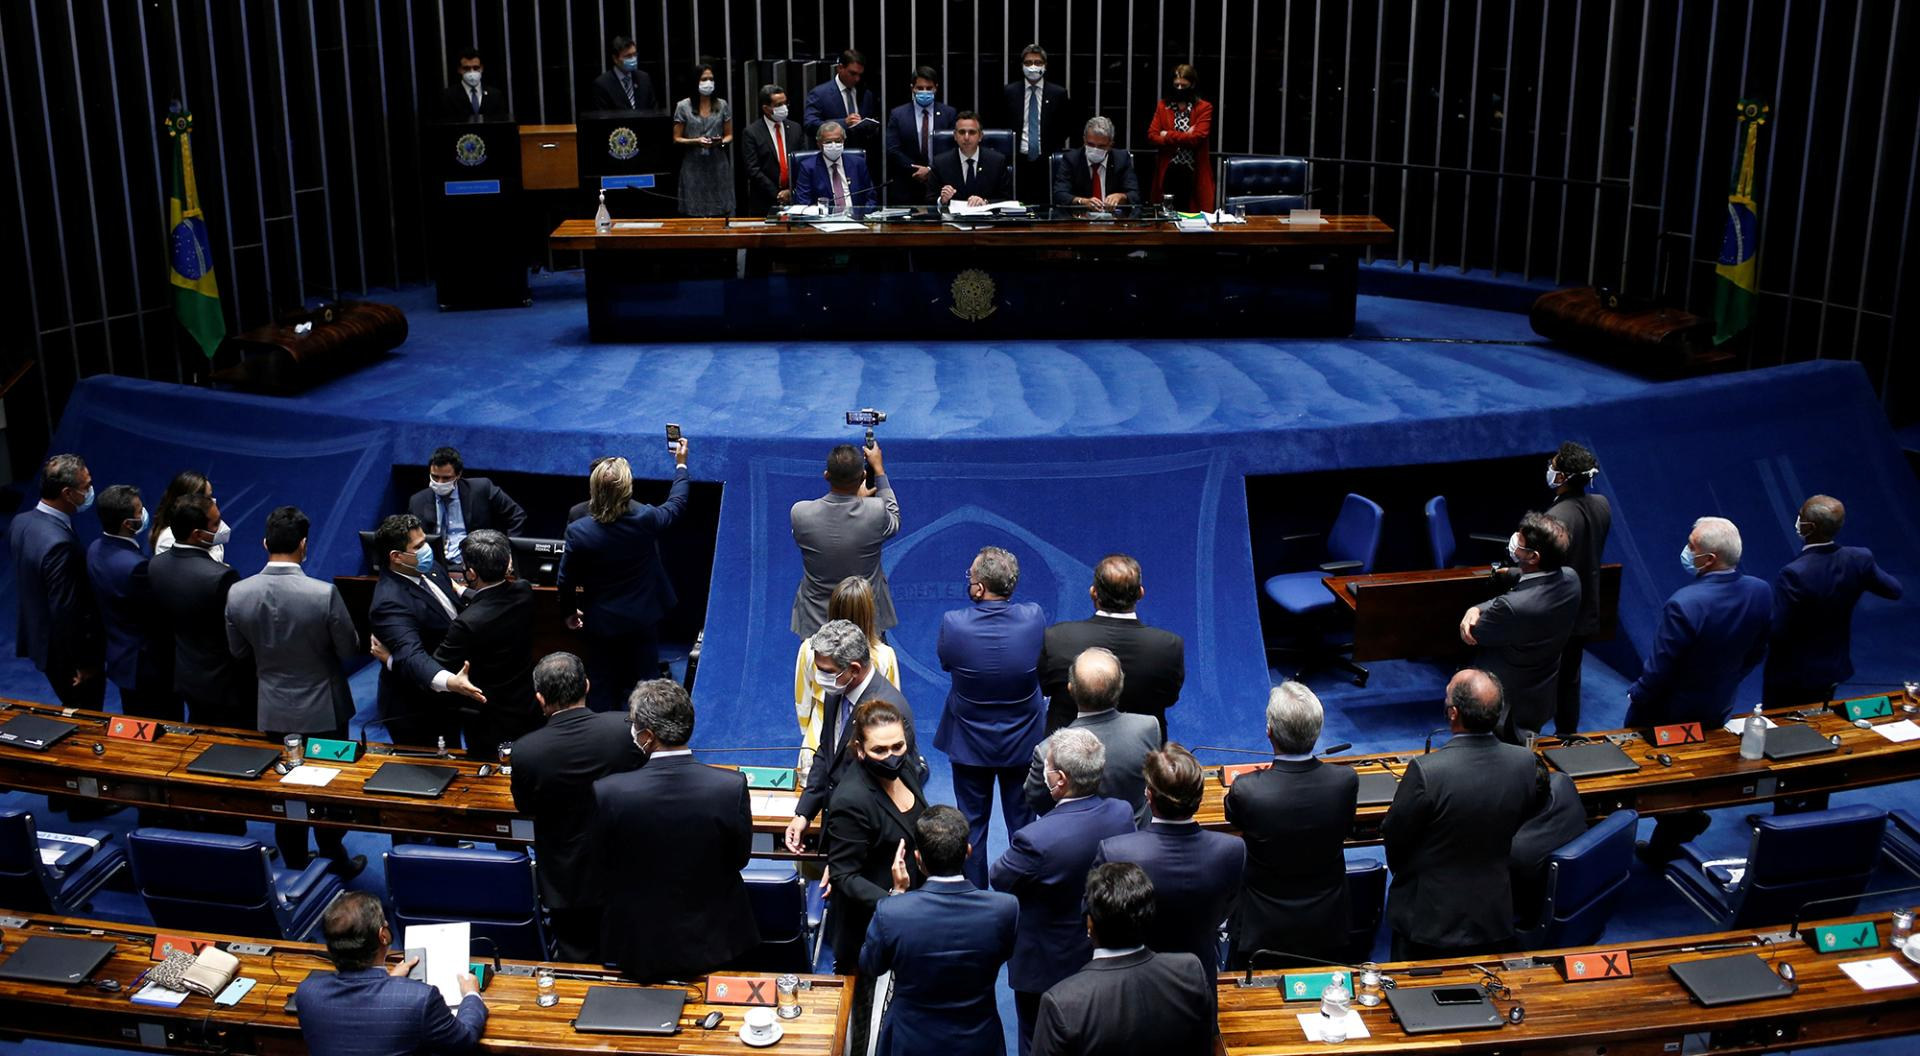 Senator Rodrigo Pacheco speaks after being elected the president of the Brazilian Senate in Brasilia, Brazil